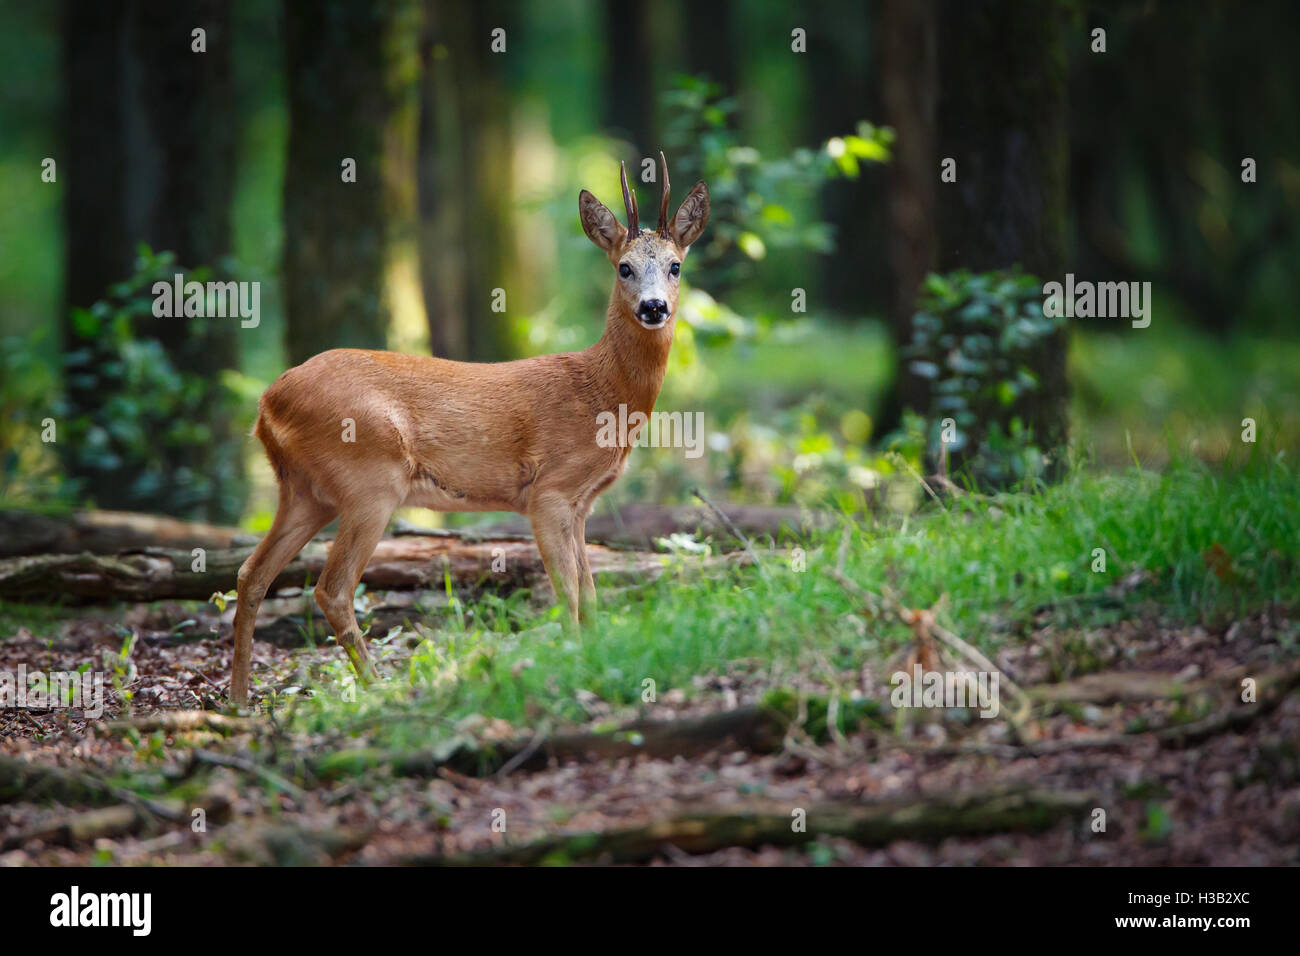 a roe deer in a forest - Stock Image